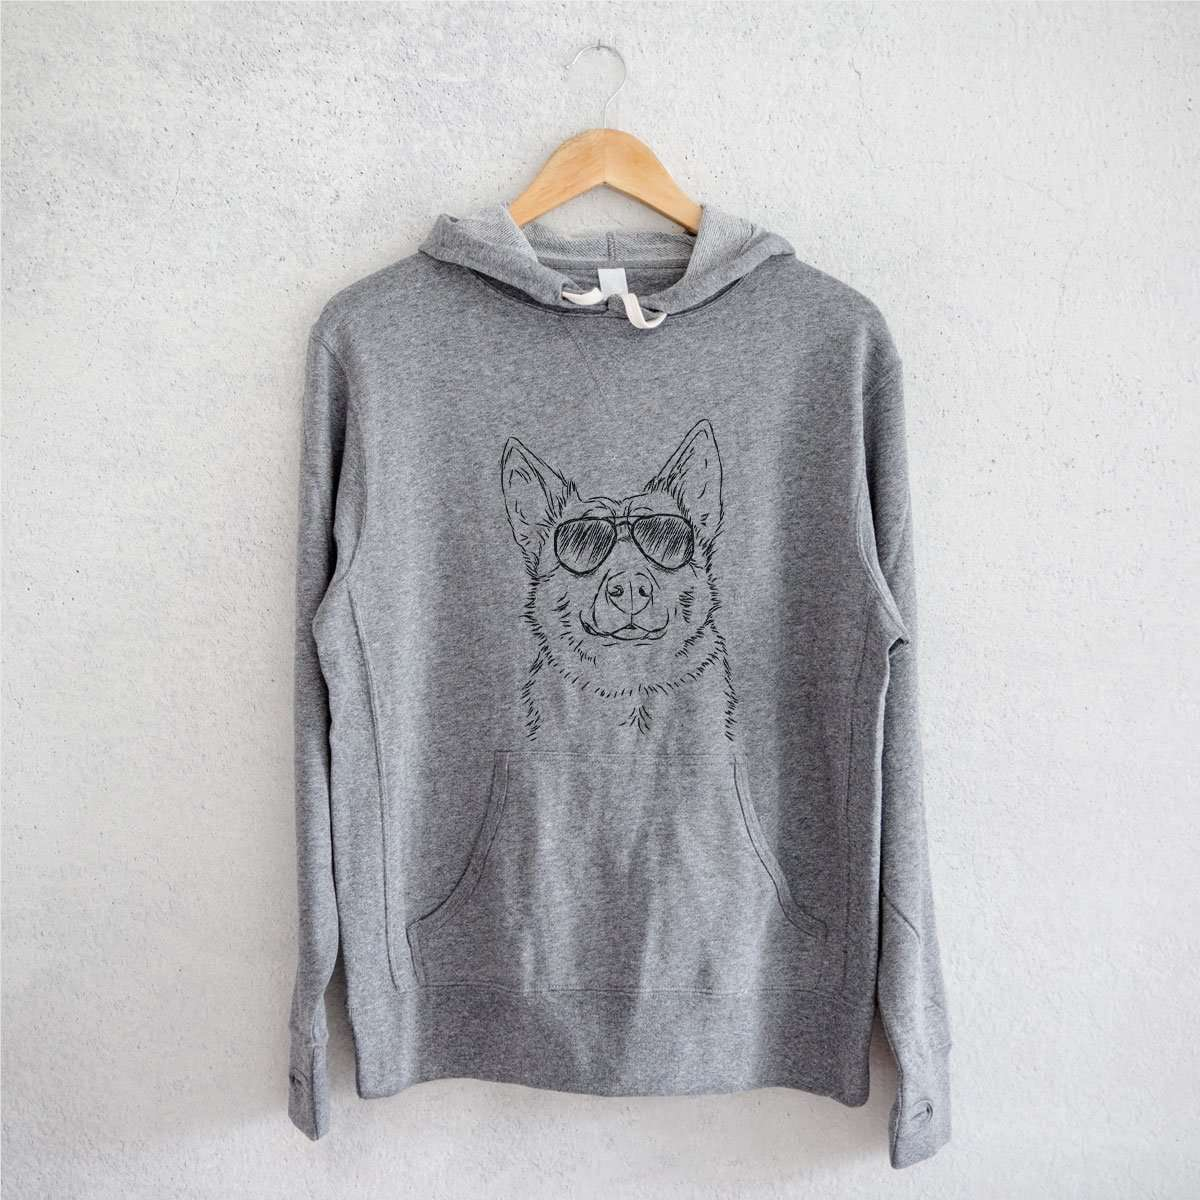 Austin the Heeler - Grey French Terry Hooded Sweatshirt